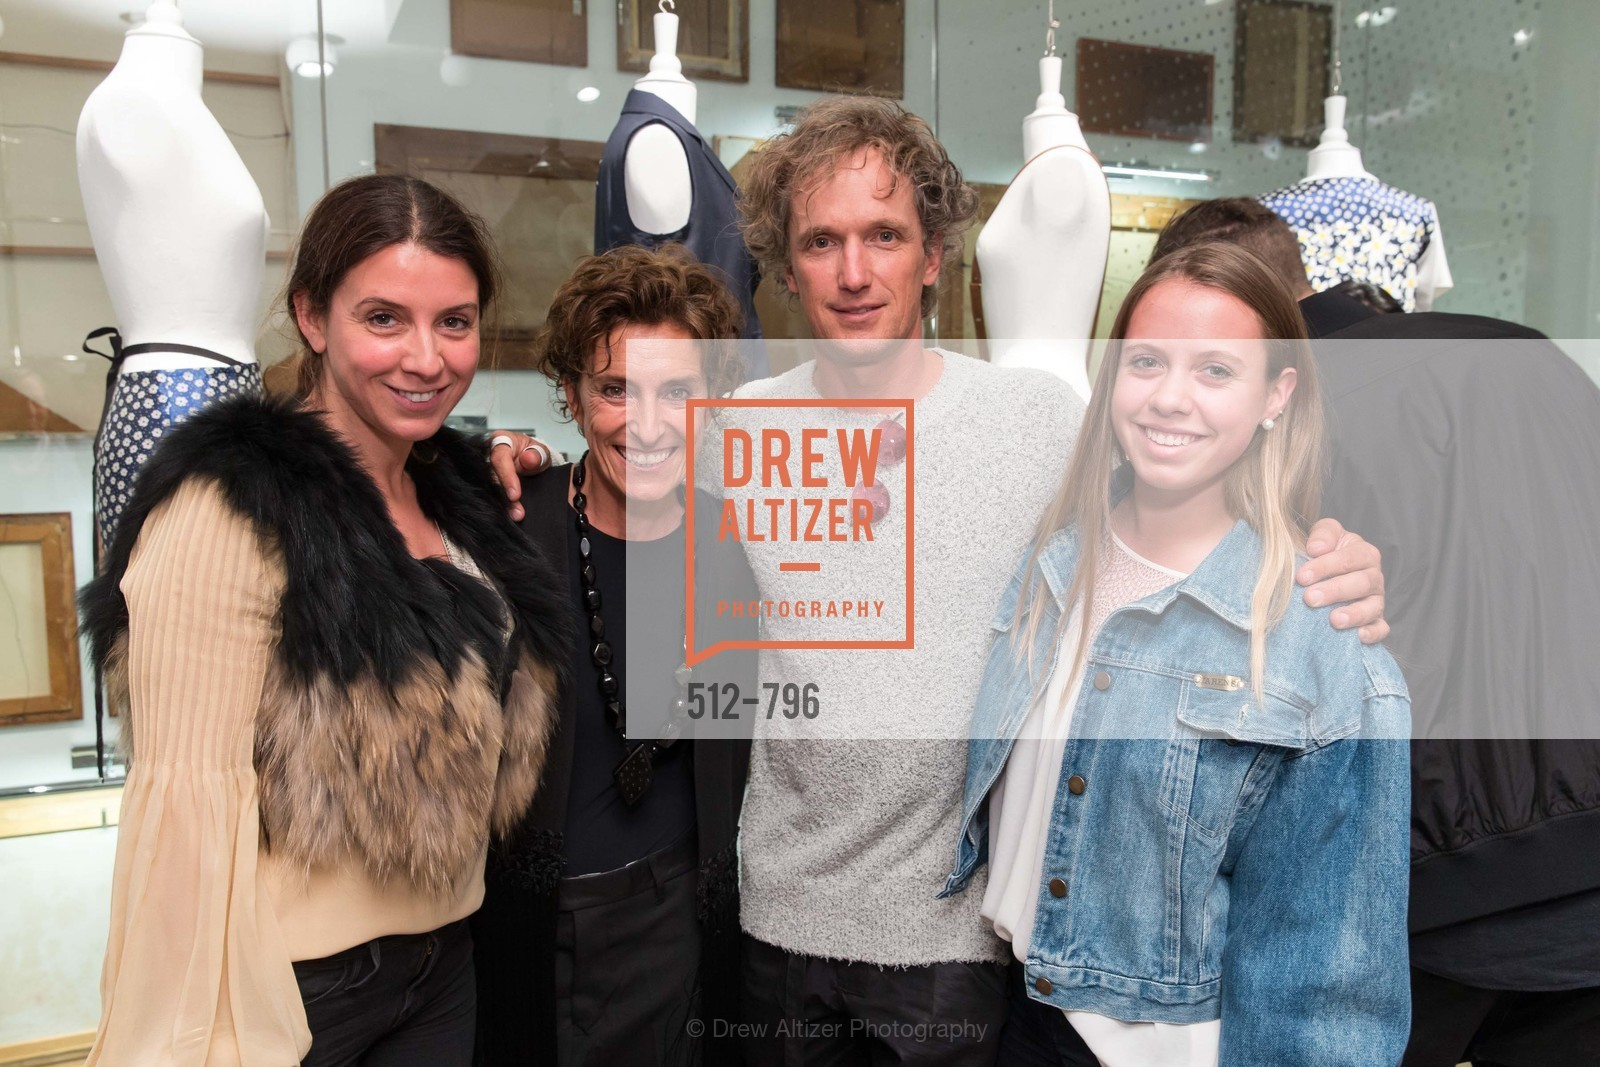 Maca Huneeus, Monica Voltolina, Yves Behar, Antonia Huneeus, MAISON MARGIELA San Francisco Boutique Grand Opening Event, US, April 24th, 2015,Drew Altizer, Drew Altizer Photography, full-service agency, private events, San Francisco photographer, photographer california